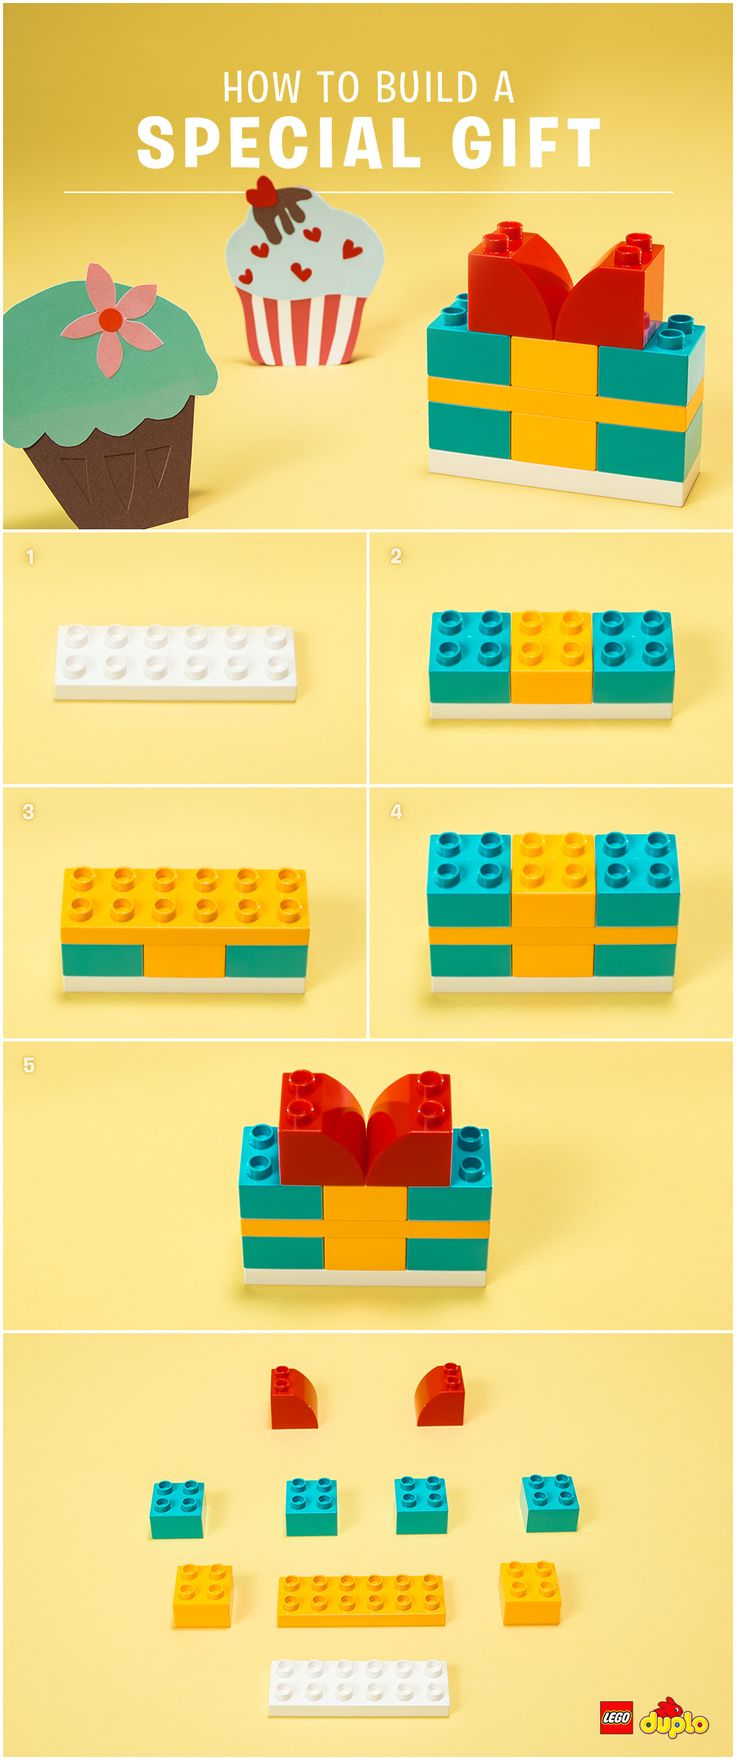 Surprise a special someone with a gift! Find out here how you and your toddler can build a cute present together: http://www.lego.com/da-dk/family/articles/the-gift-that-truly-gives-51e16b8ccccb4a399205911219861421